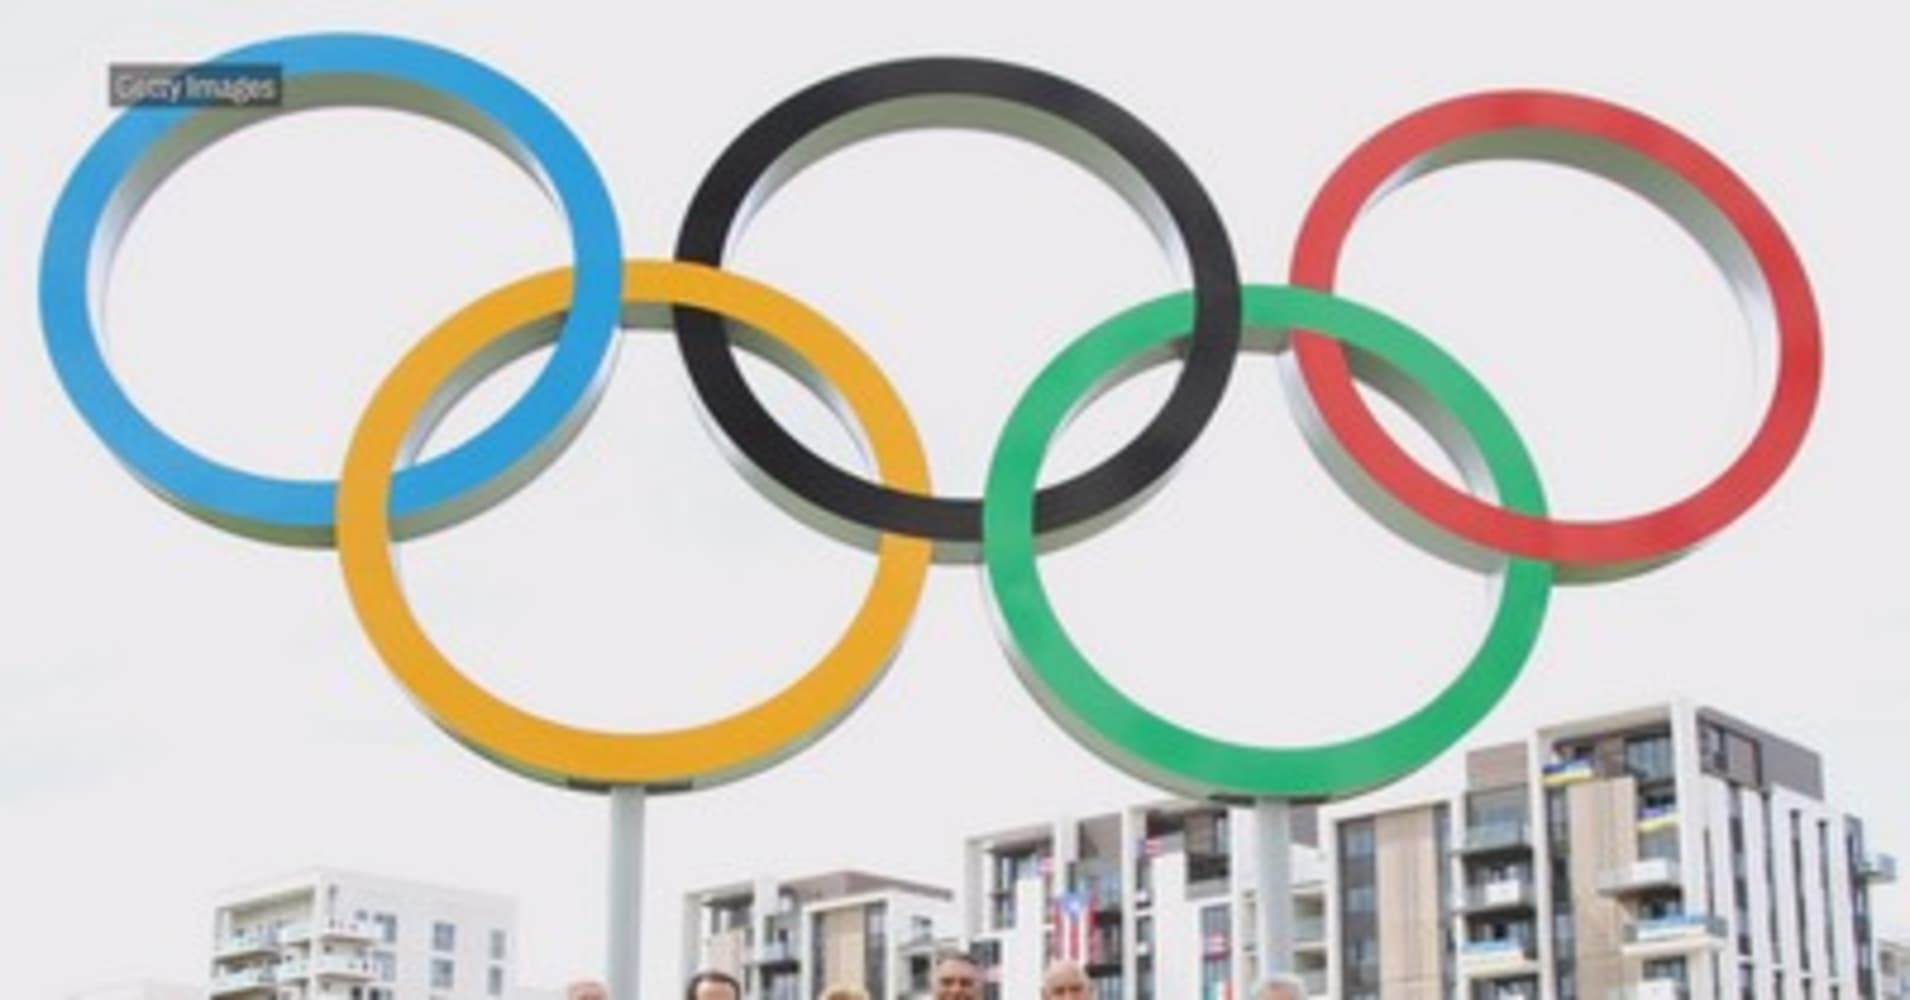 7 cities confirm interest in hosting 2026 Winter Olympics on